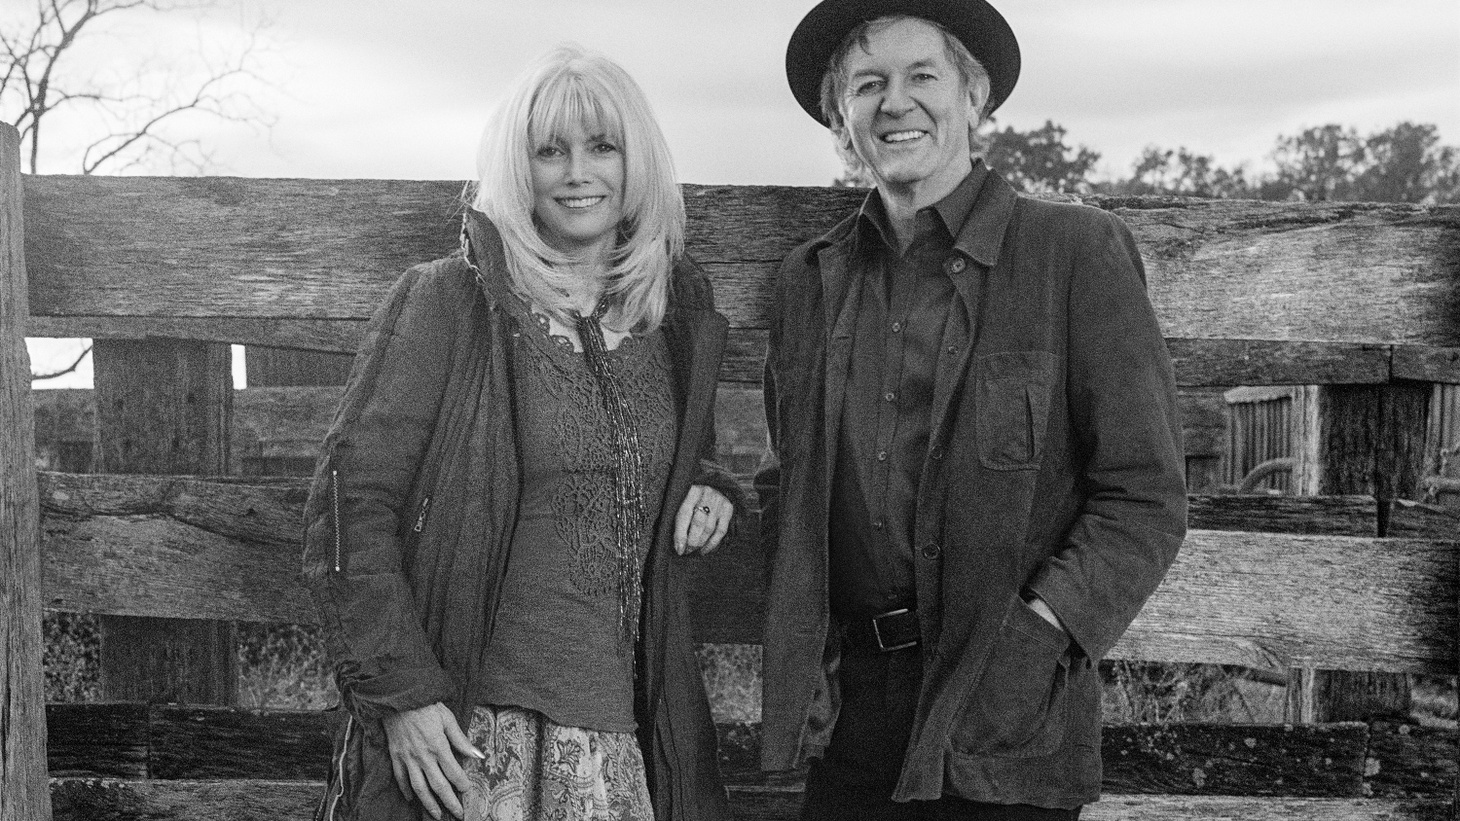 Emmylou Harris and Rodney Crowell built their careers on driving melodies and transporting lyrics. Their new collaboration finds the pair opening their hearts in confessional song...